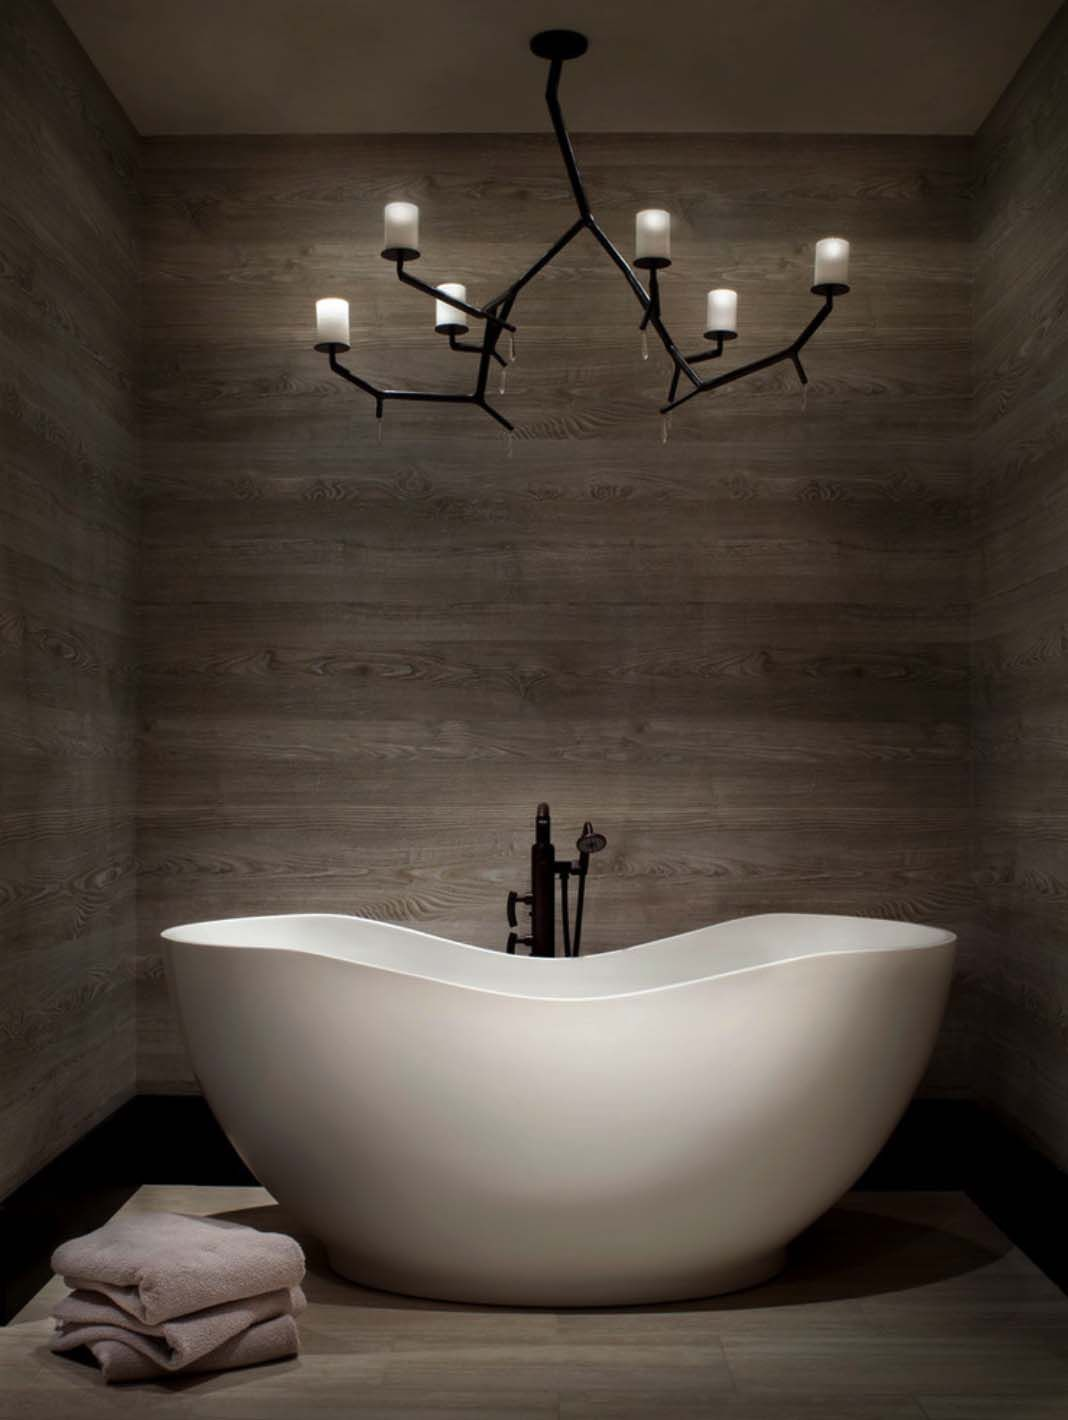 Cool 80 Luxury Spa Bathroom Ideas Https Hometoz Com 80 Luxury Spa Bathroom Ideas Contemporary Master Bathroom Bathtub Design Bathroom Lighting